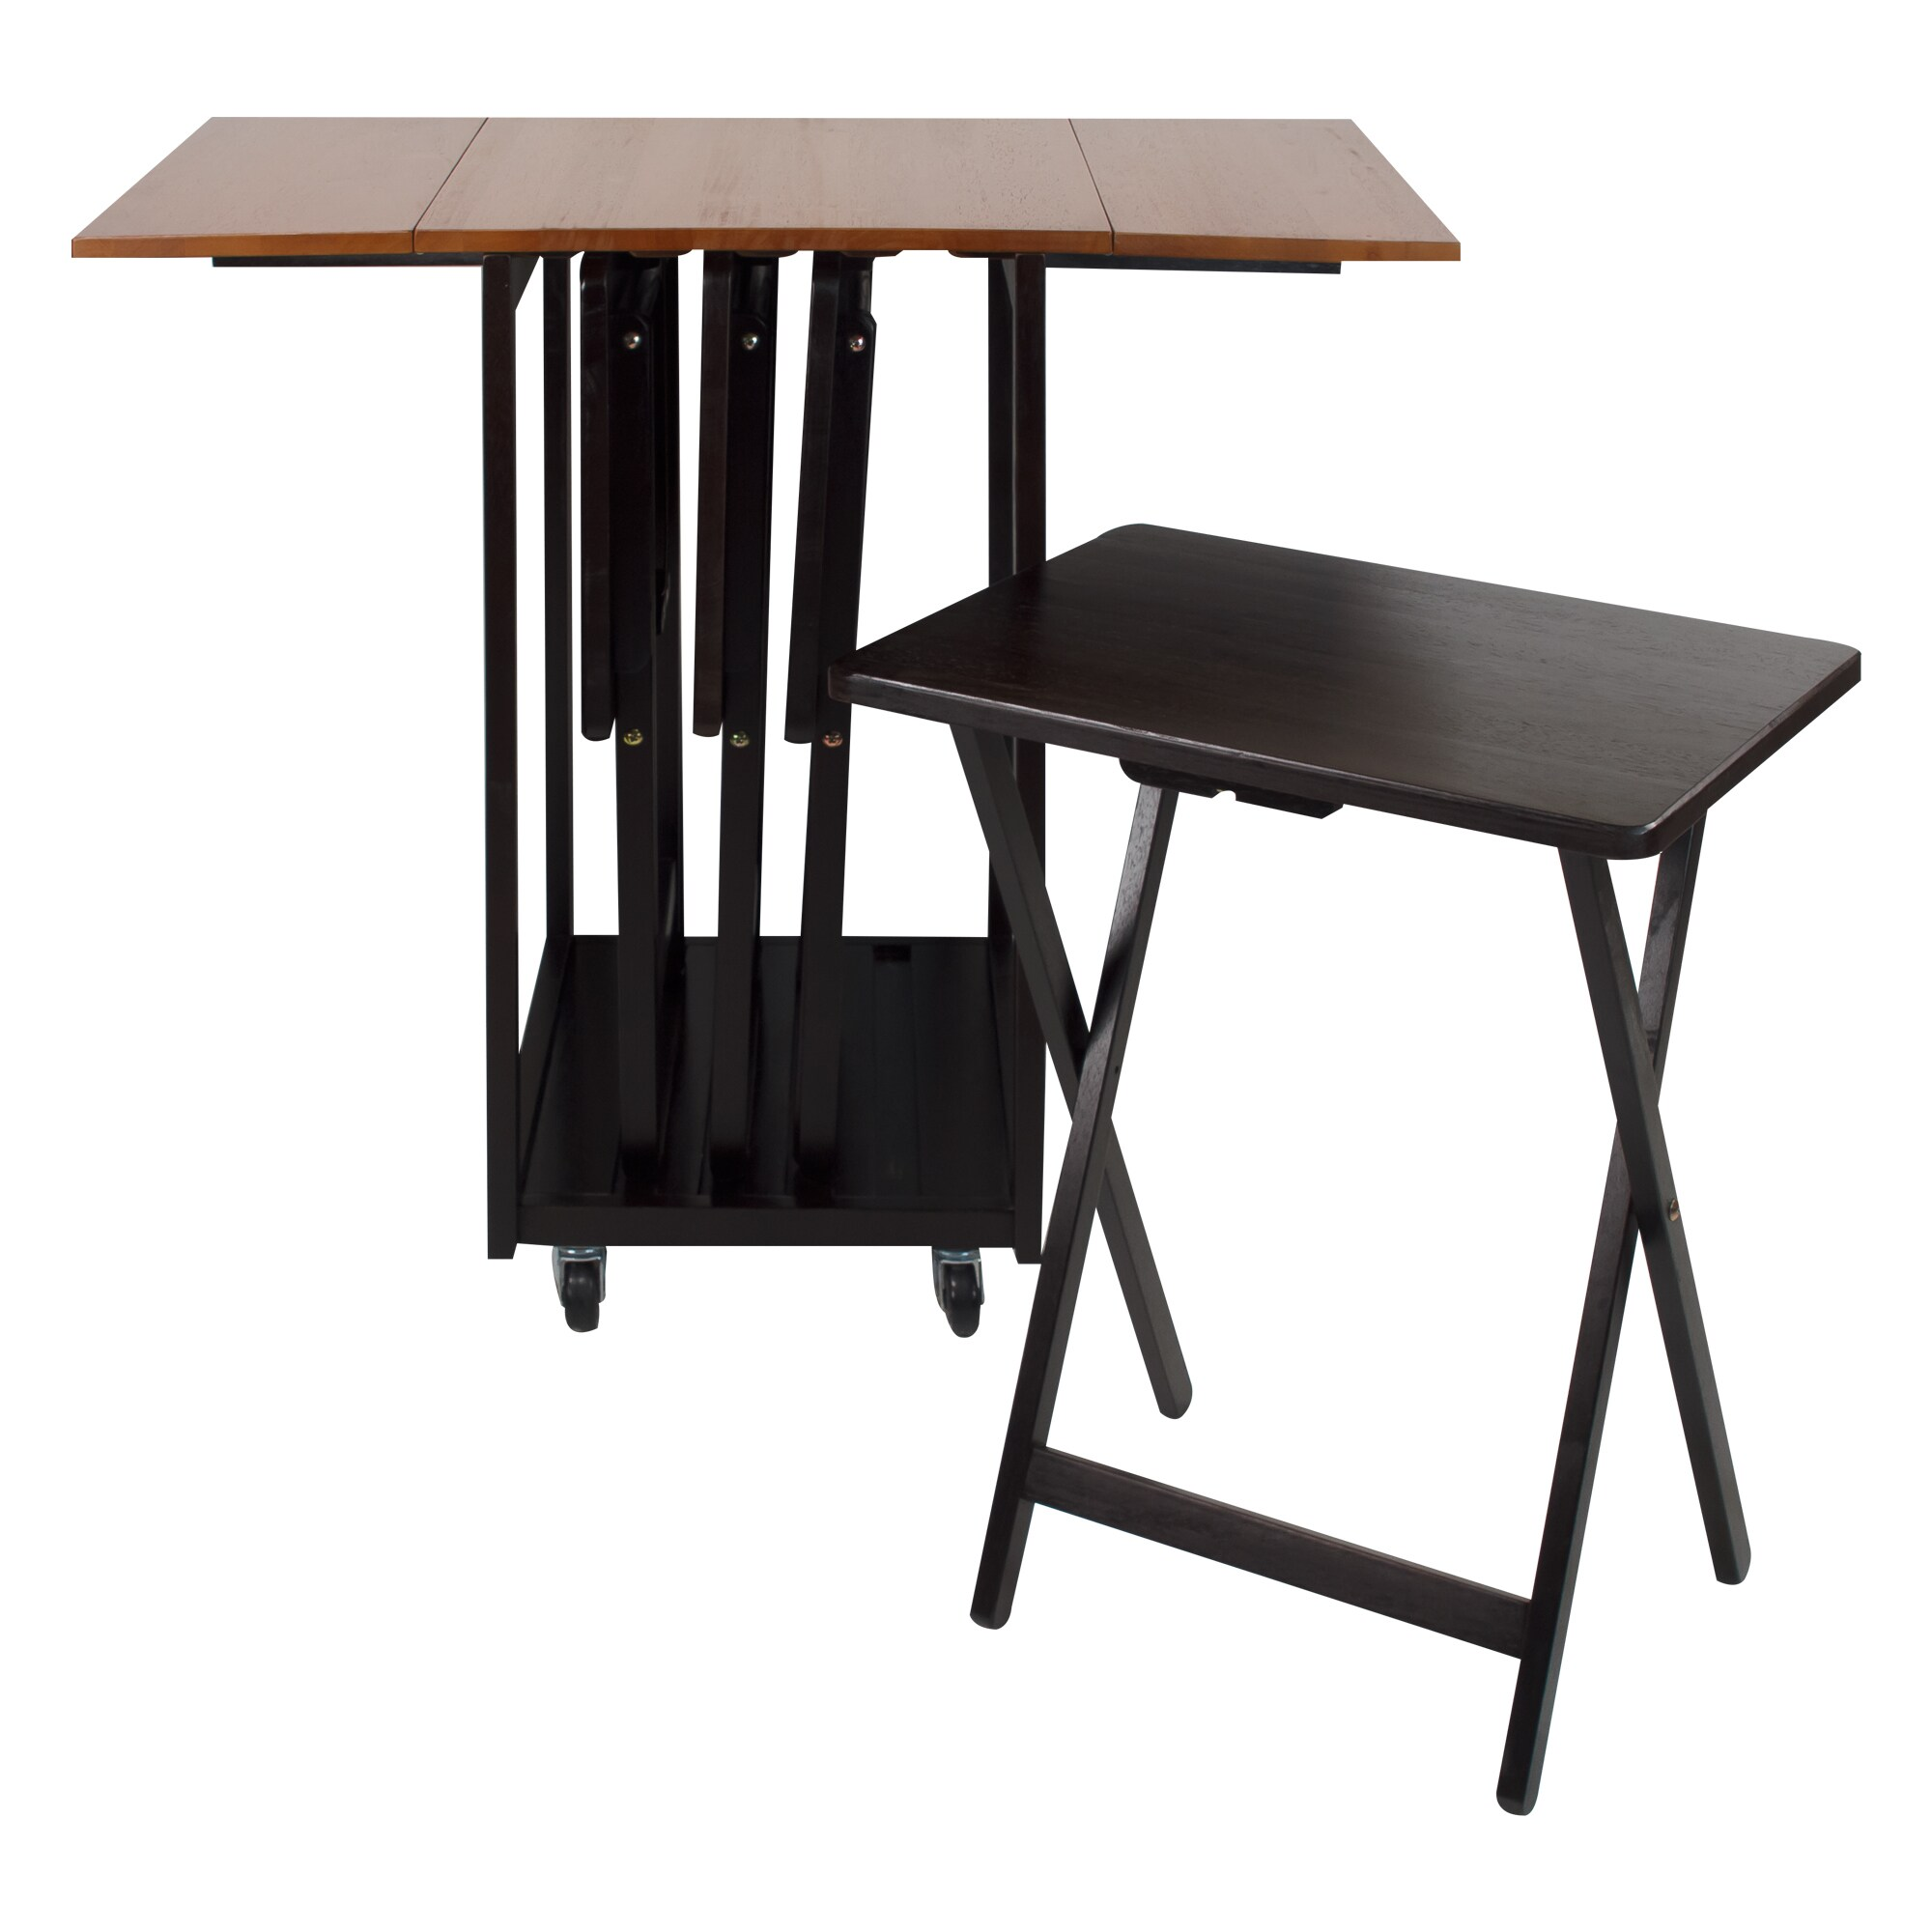 Drop Leaf Table/ TV Tray Set - Free Shipping Today - Overstock - 21803930  sc 1 st  Overstock.com & Drop Leaf Table/ TV Tray Set - Free Shipping Today - Overstock ...